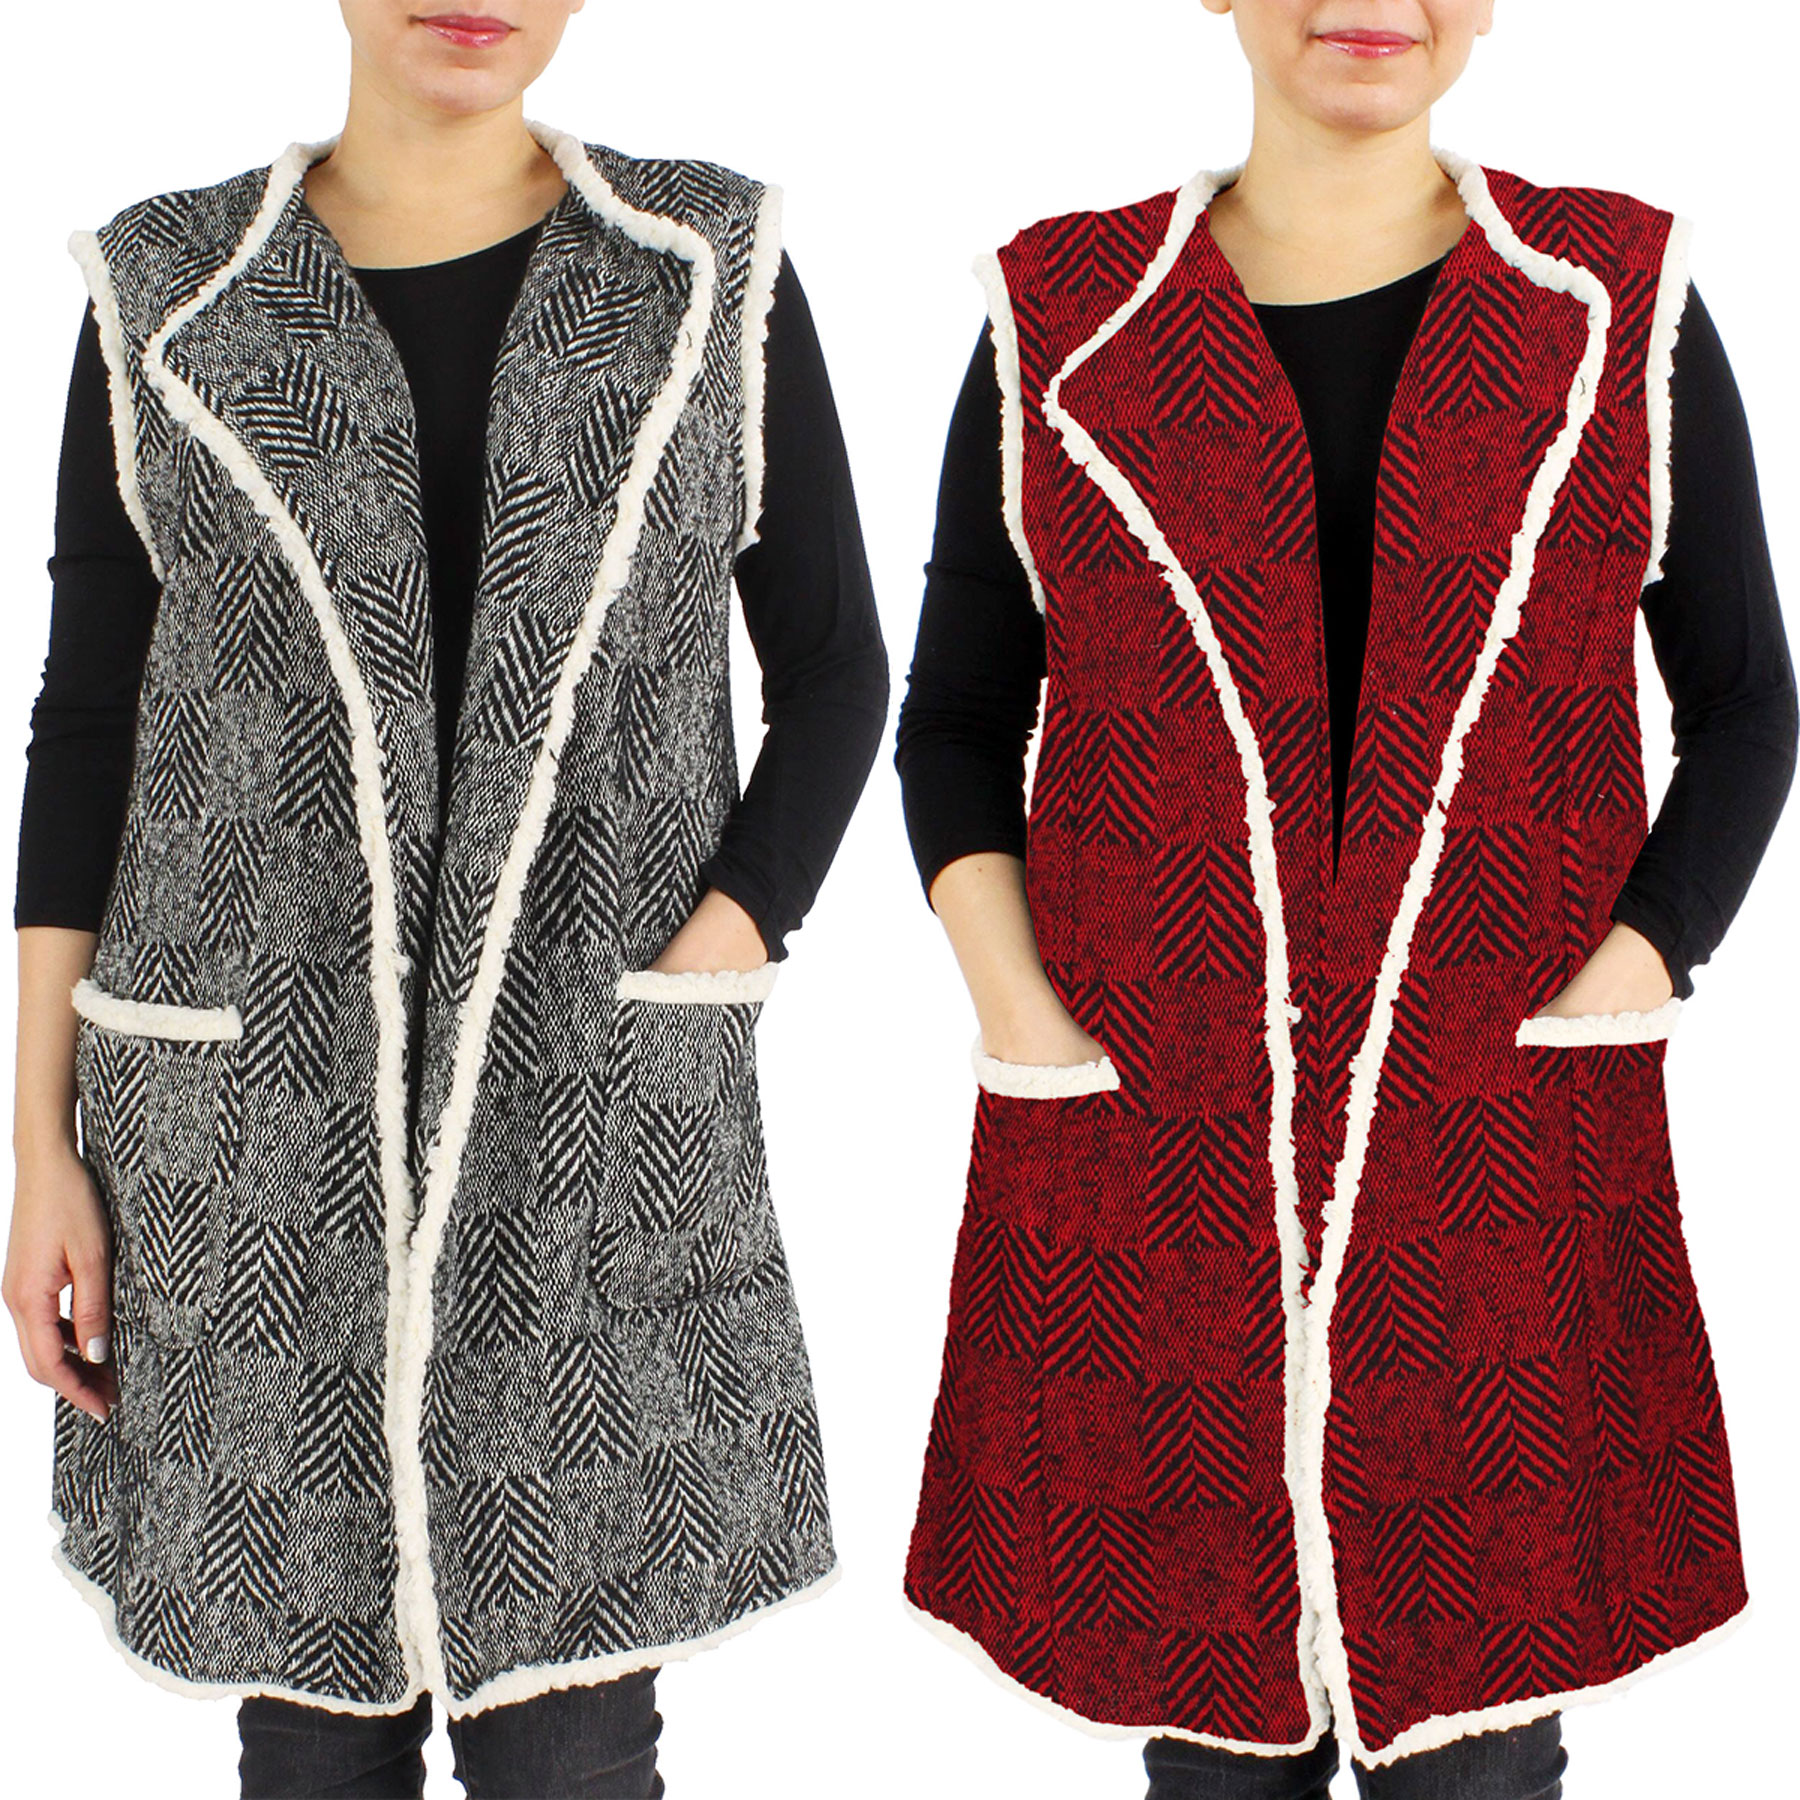 Vests - Herringbone w/ Fur Edge 9407